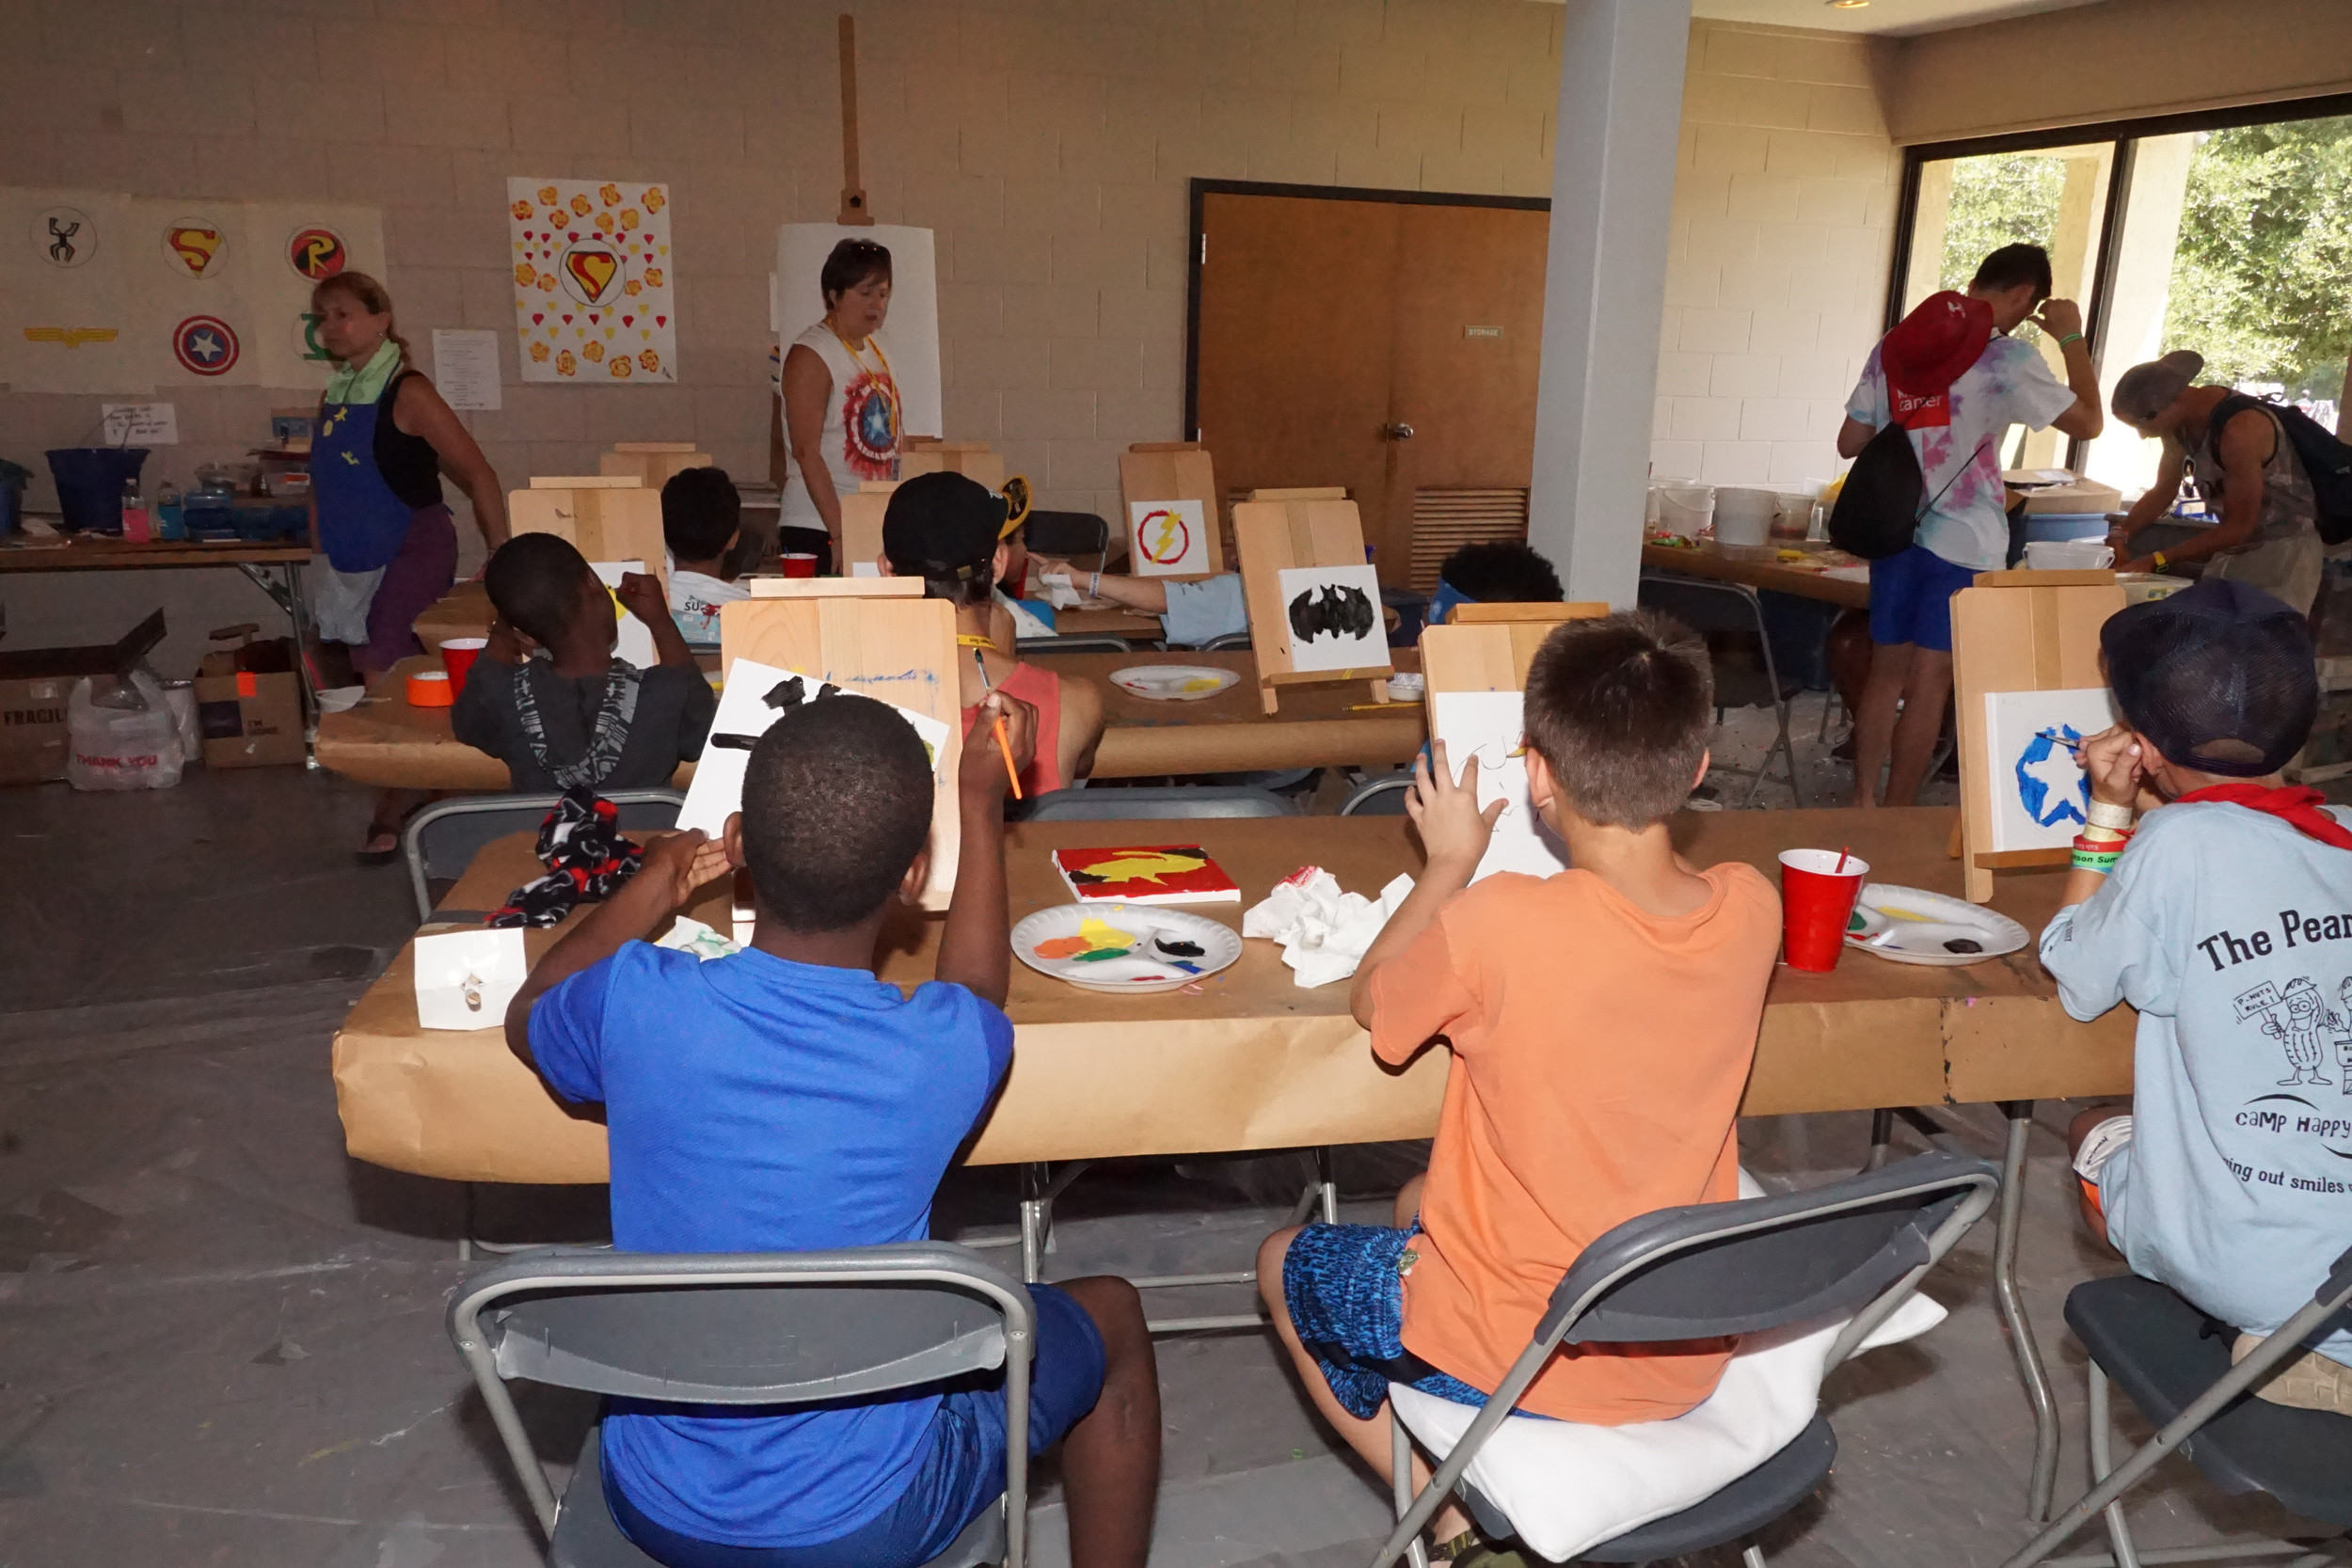 Art lessons are among the indoor activities for Camp Happy Days participants.